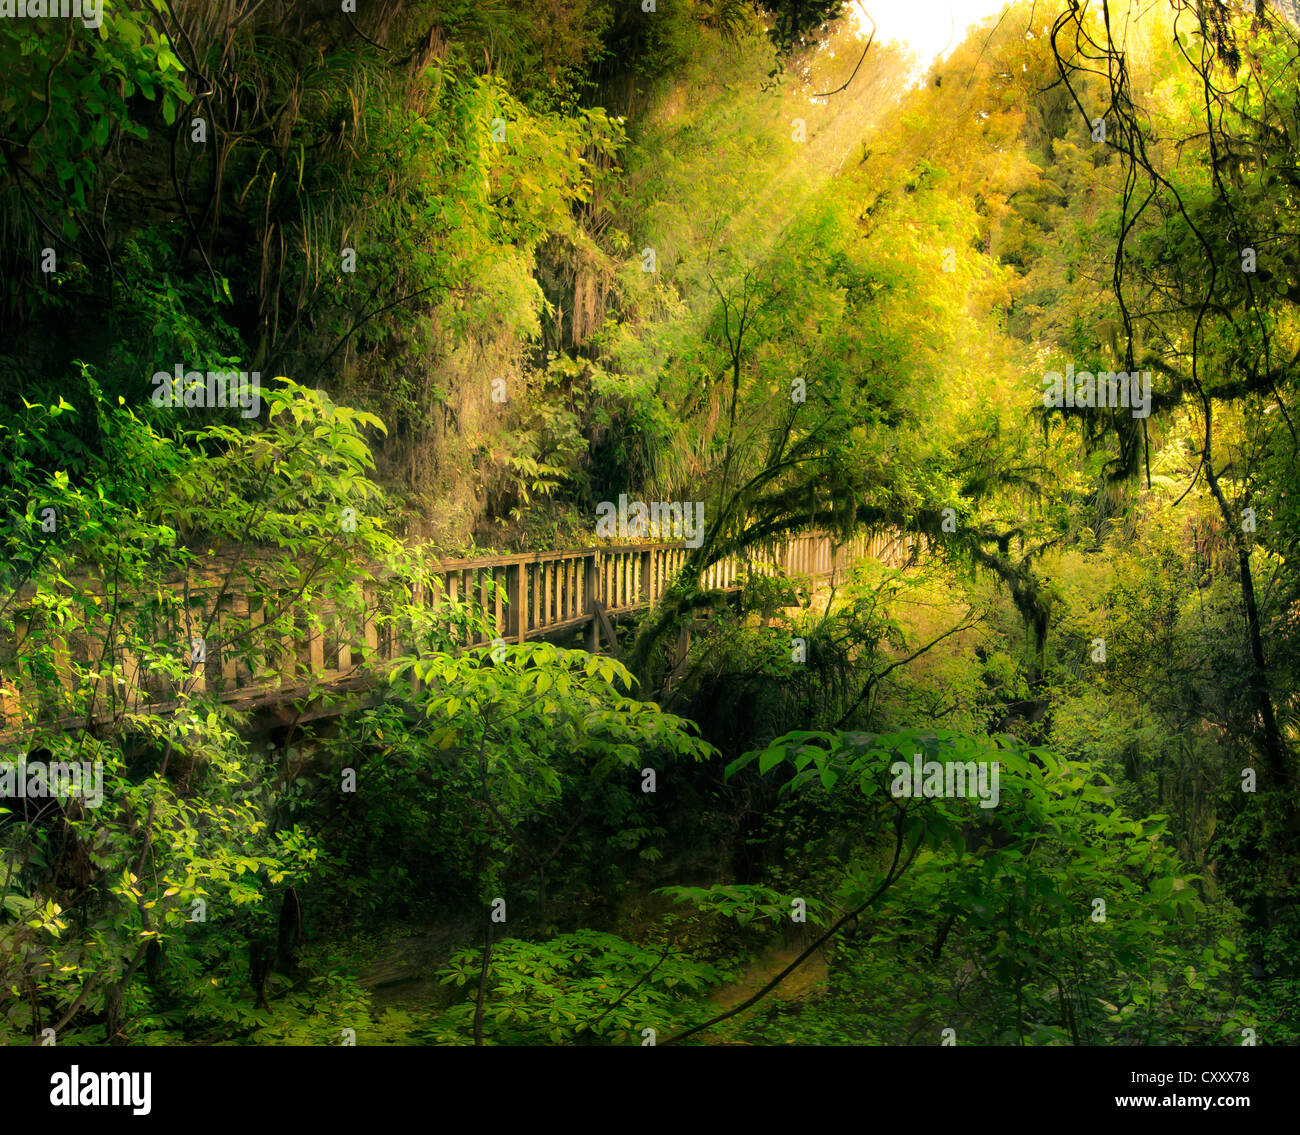 Fairytale forest with a wooden bridge, North Island, New Zealand, composing - Stock Image